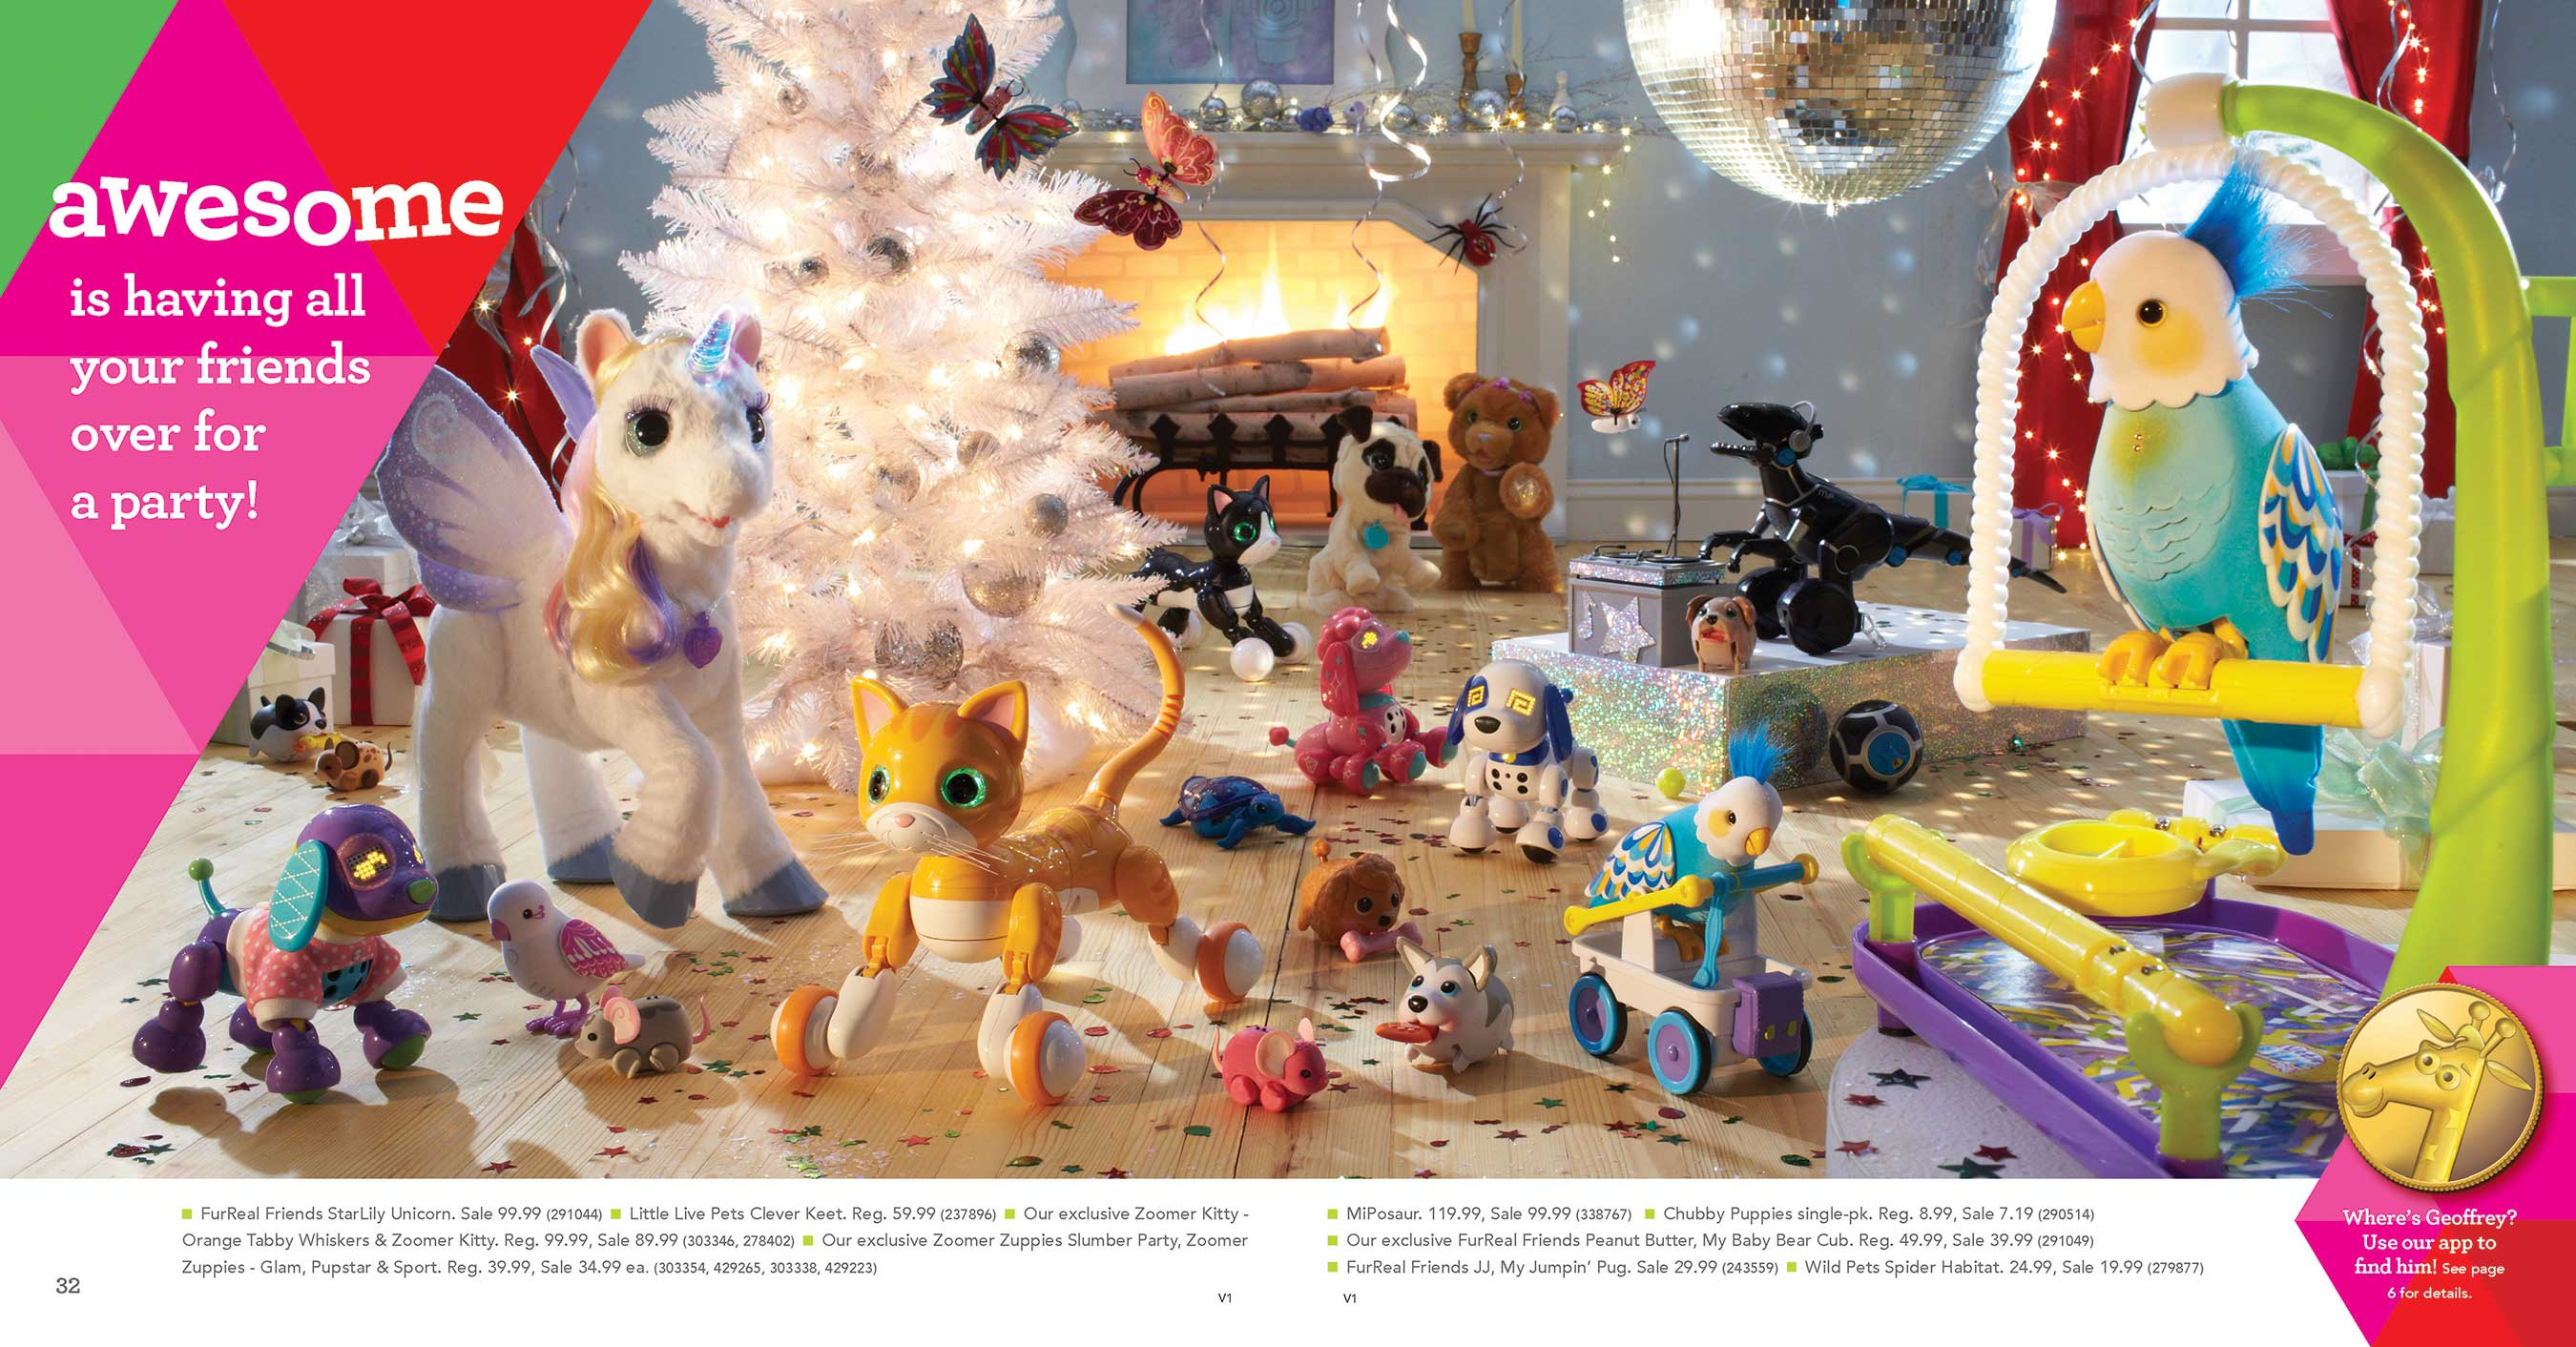 Unicorn Teddy Bear Toys R Us, The Great Big Toys R Us Book Of Awesome Arrives In Homes This Week Featuring An All New Interactive Experience